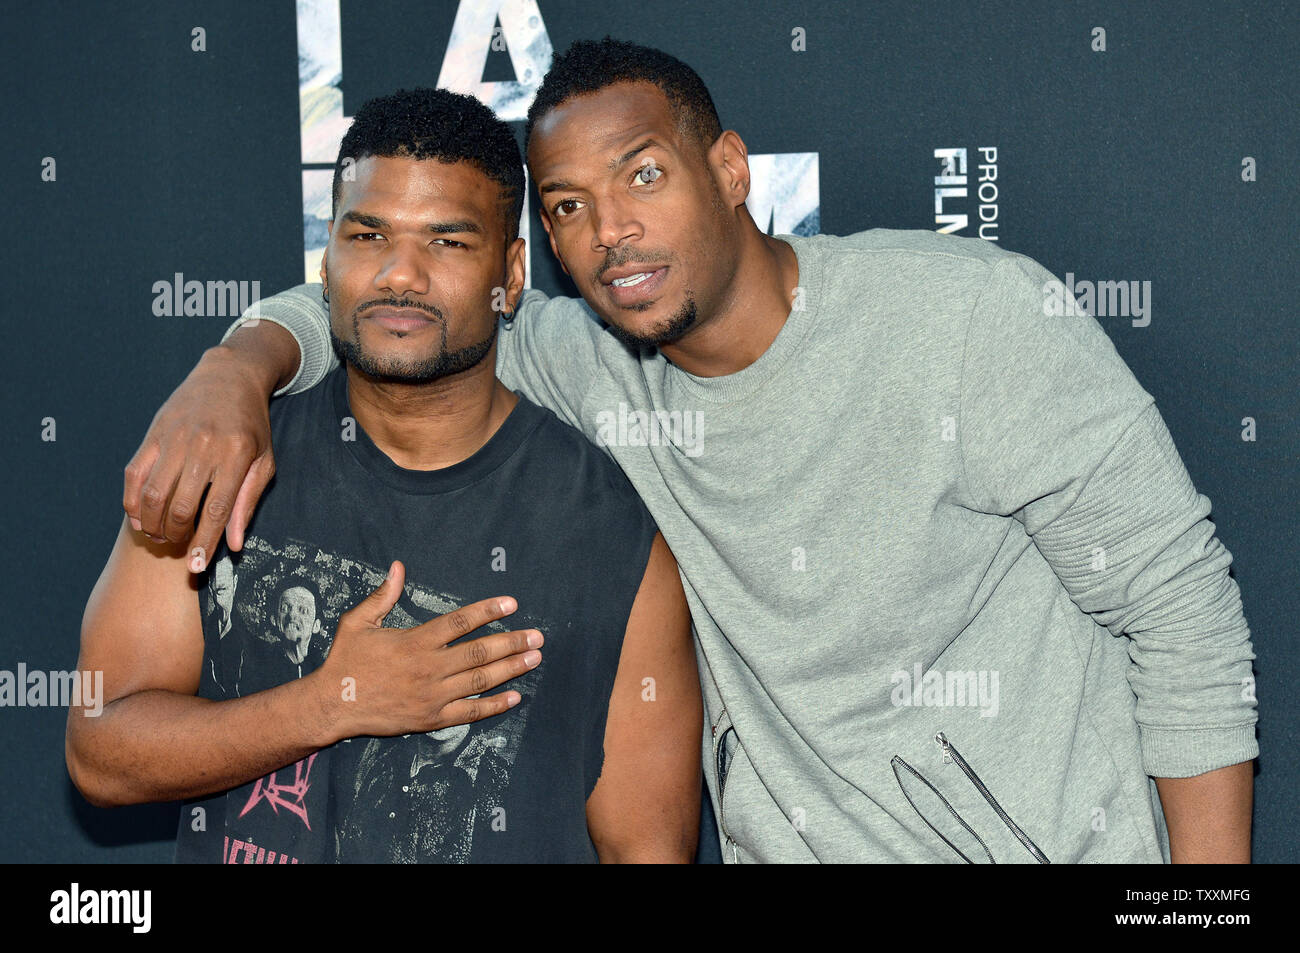 Damien Dante Wayans High Resolution Stock Photography And Images Alamy